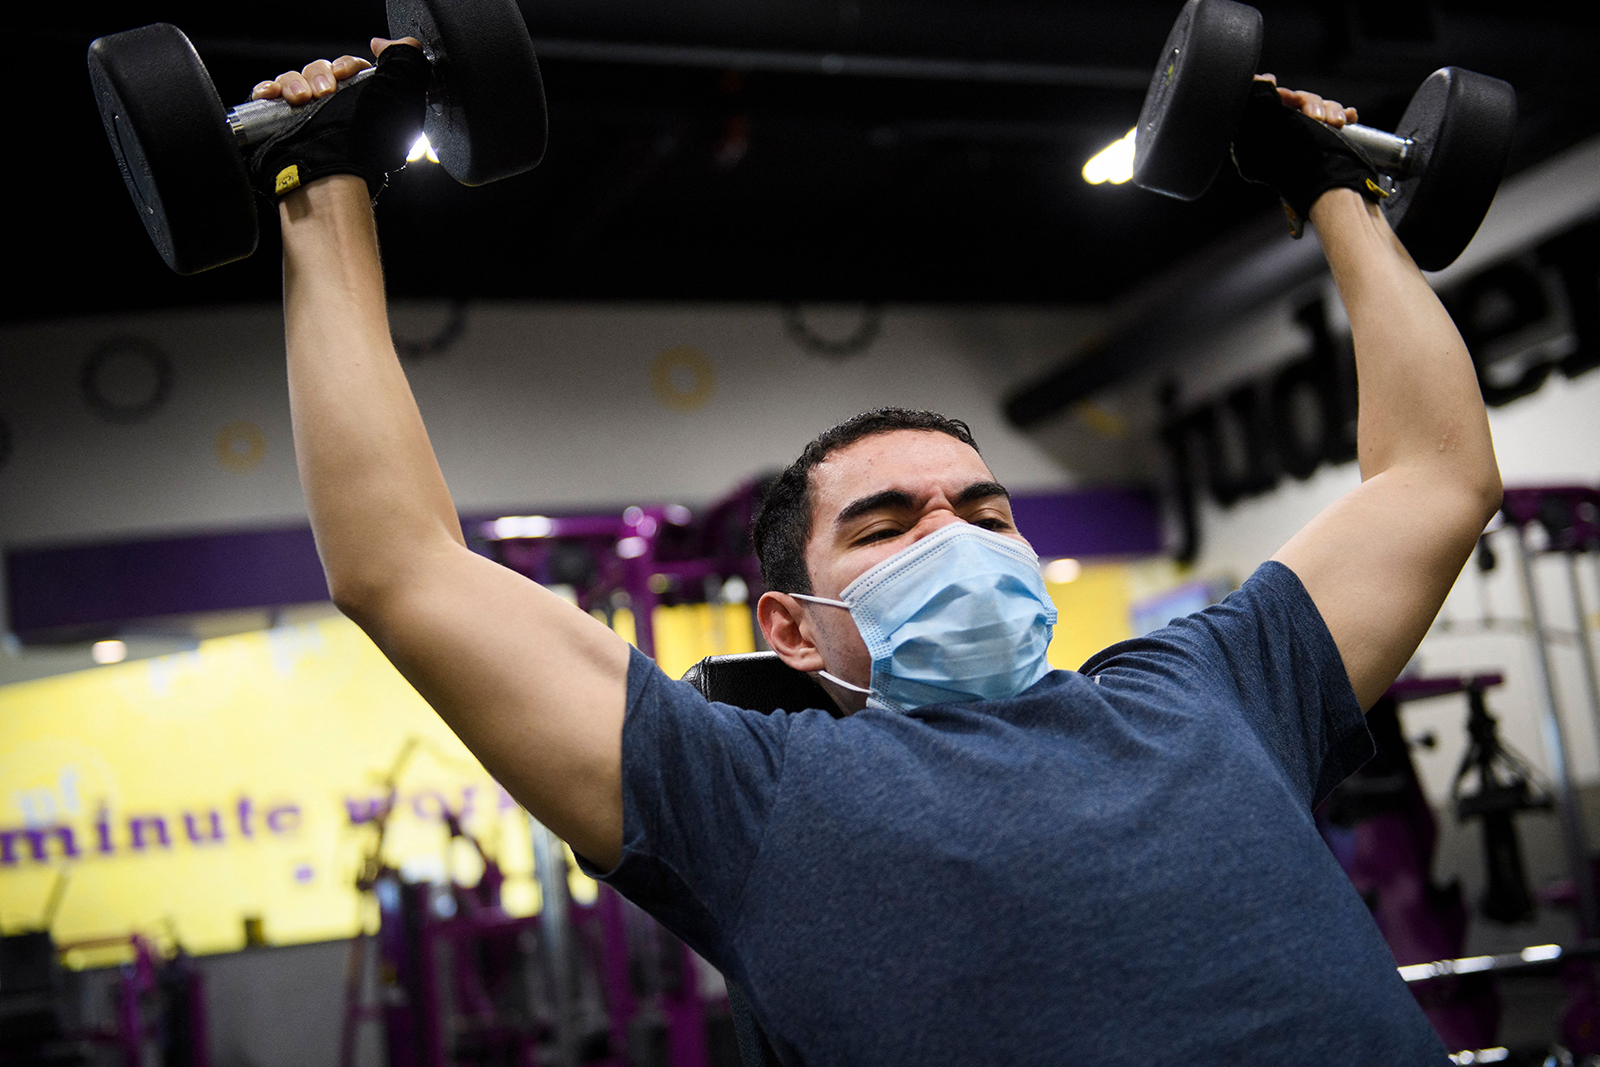 A customer wears a face mask as they lift weights inside a Planet Fitness Inc. gym on March 16, in Inglewood, California.